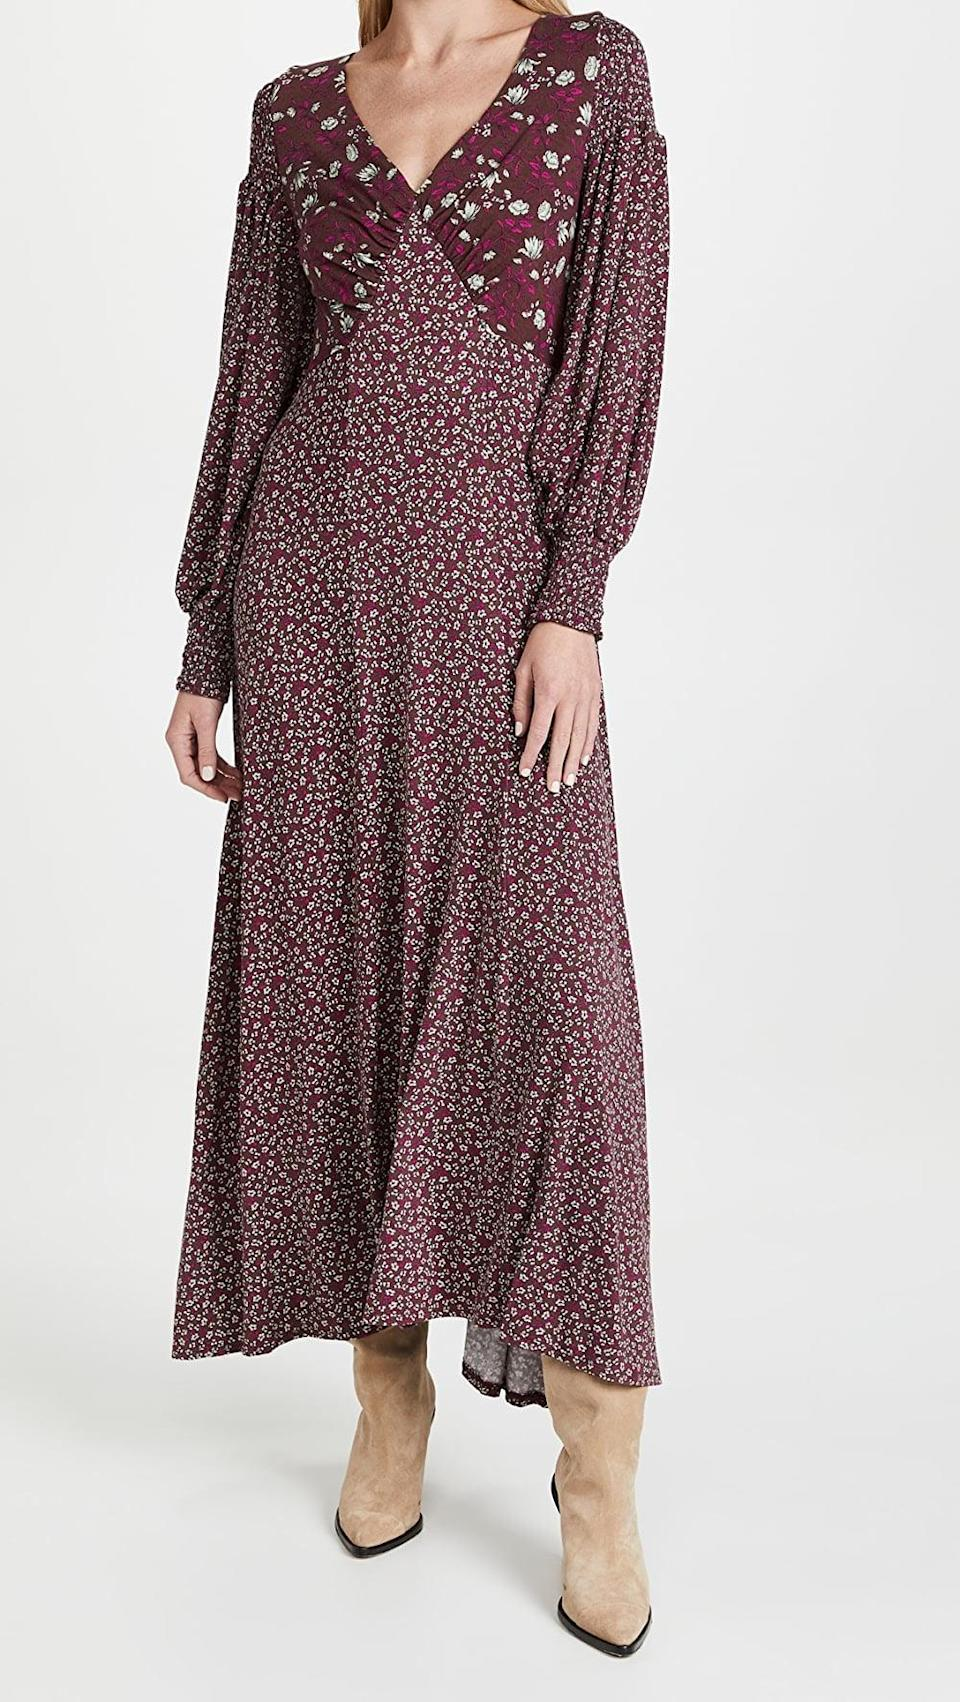 <p>This <span>Free People Love Story Maxi Dress</span> ($198) calls for parties where lots of wine will be flowing. The color will not only be on theme, but it will also look feminine with its floral details.</p>